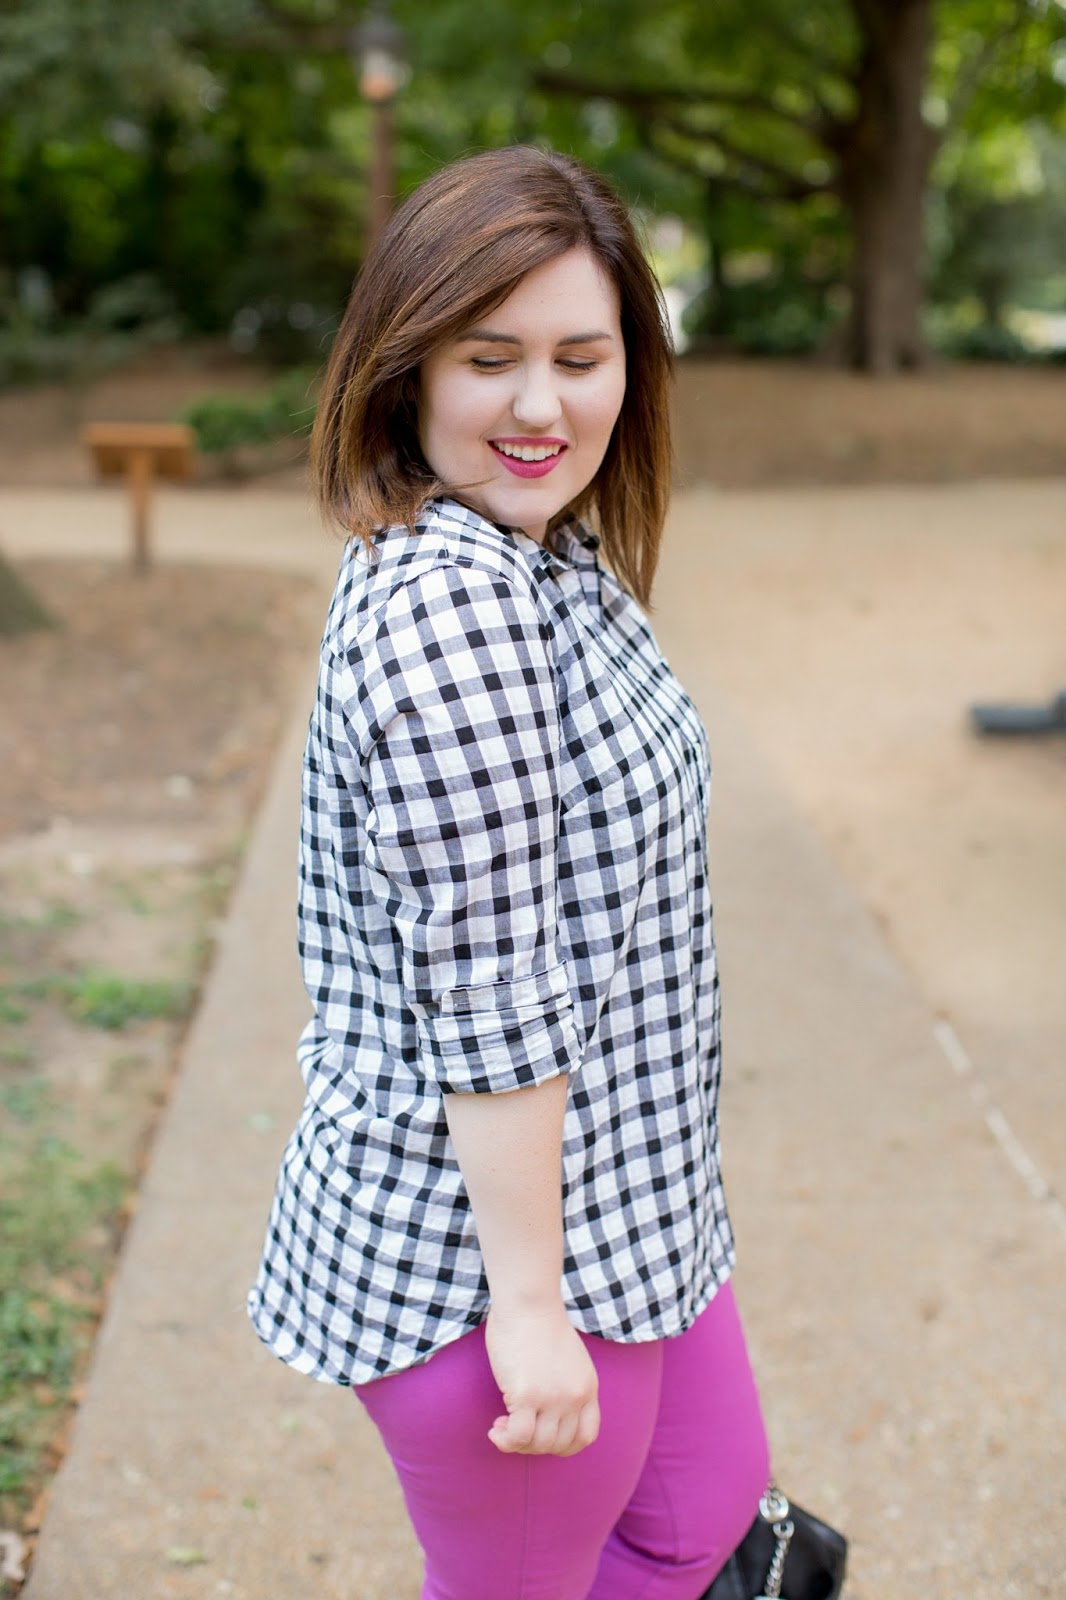 Rebecca Lately Black White Gingham Old Navy Razzleberry Pixie Pants Michael Kors Chandler